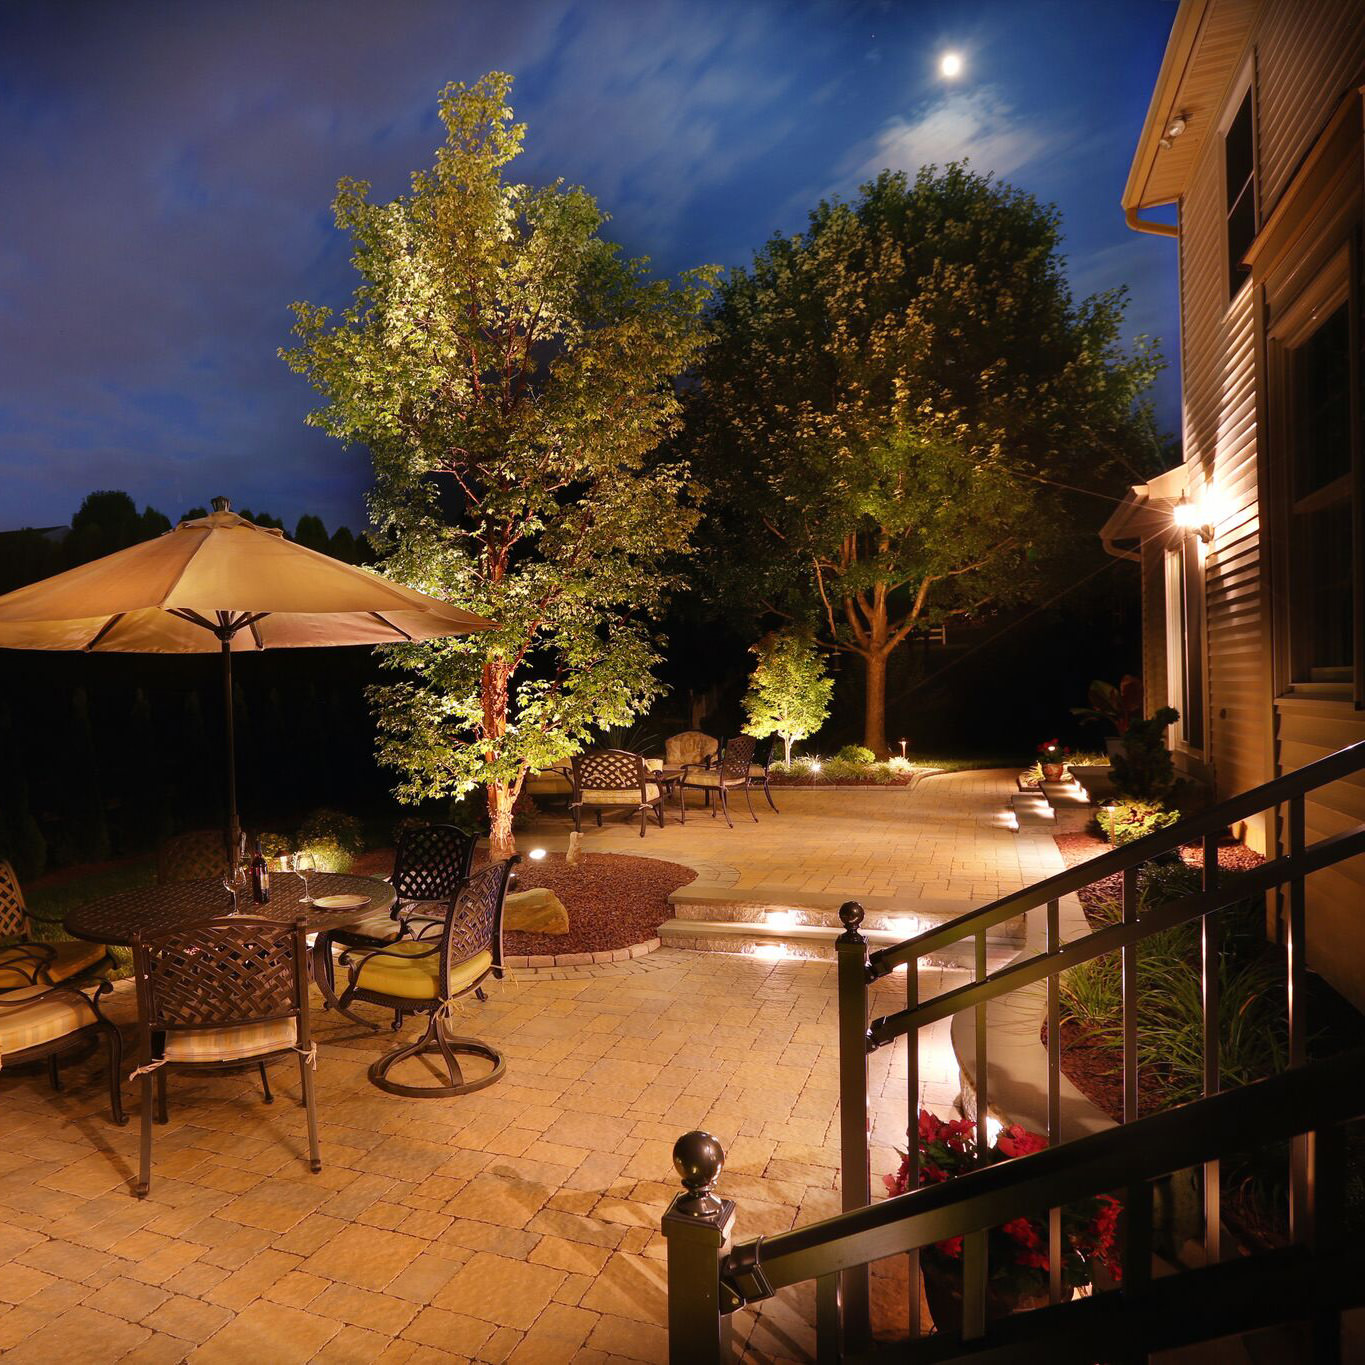 Implementing landscape and feature lighting into your landscape design is a great way to create a warm and welcoming environment once the sun sets.